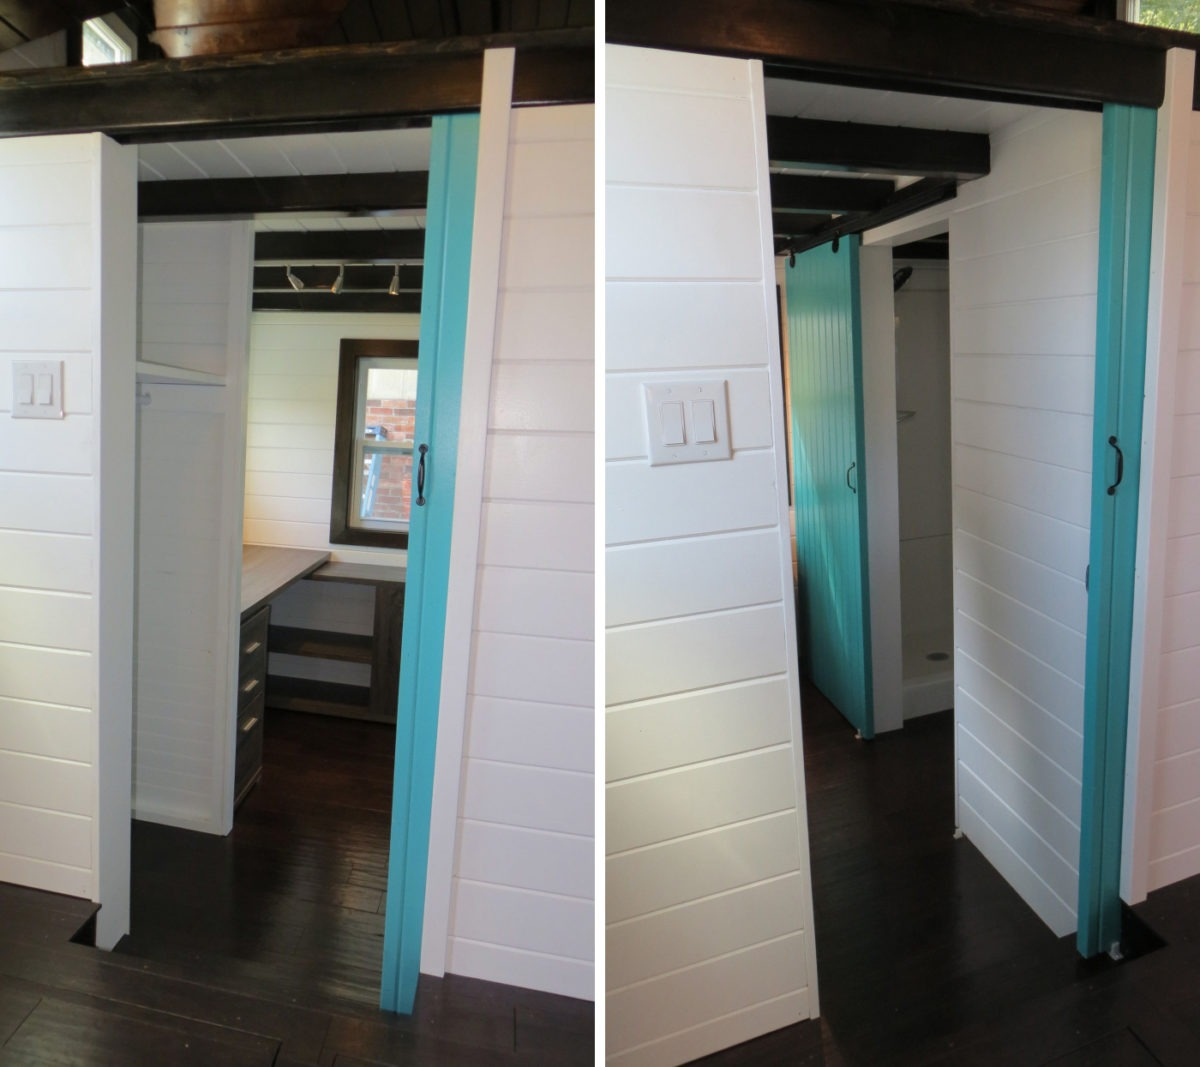 Door and Beam Ceiling - 36° North by Brevard Tiny House